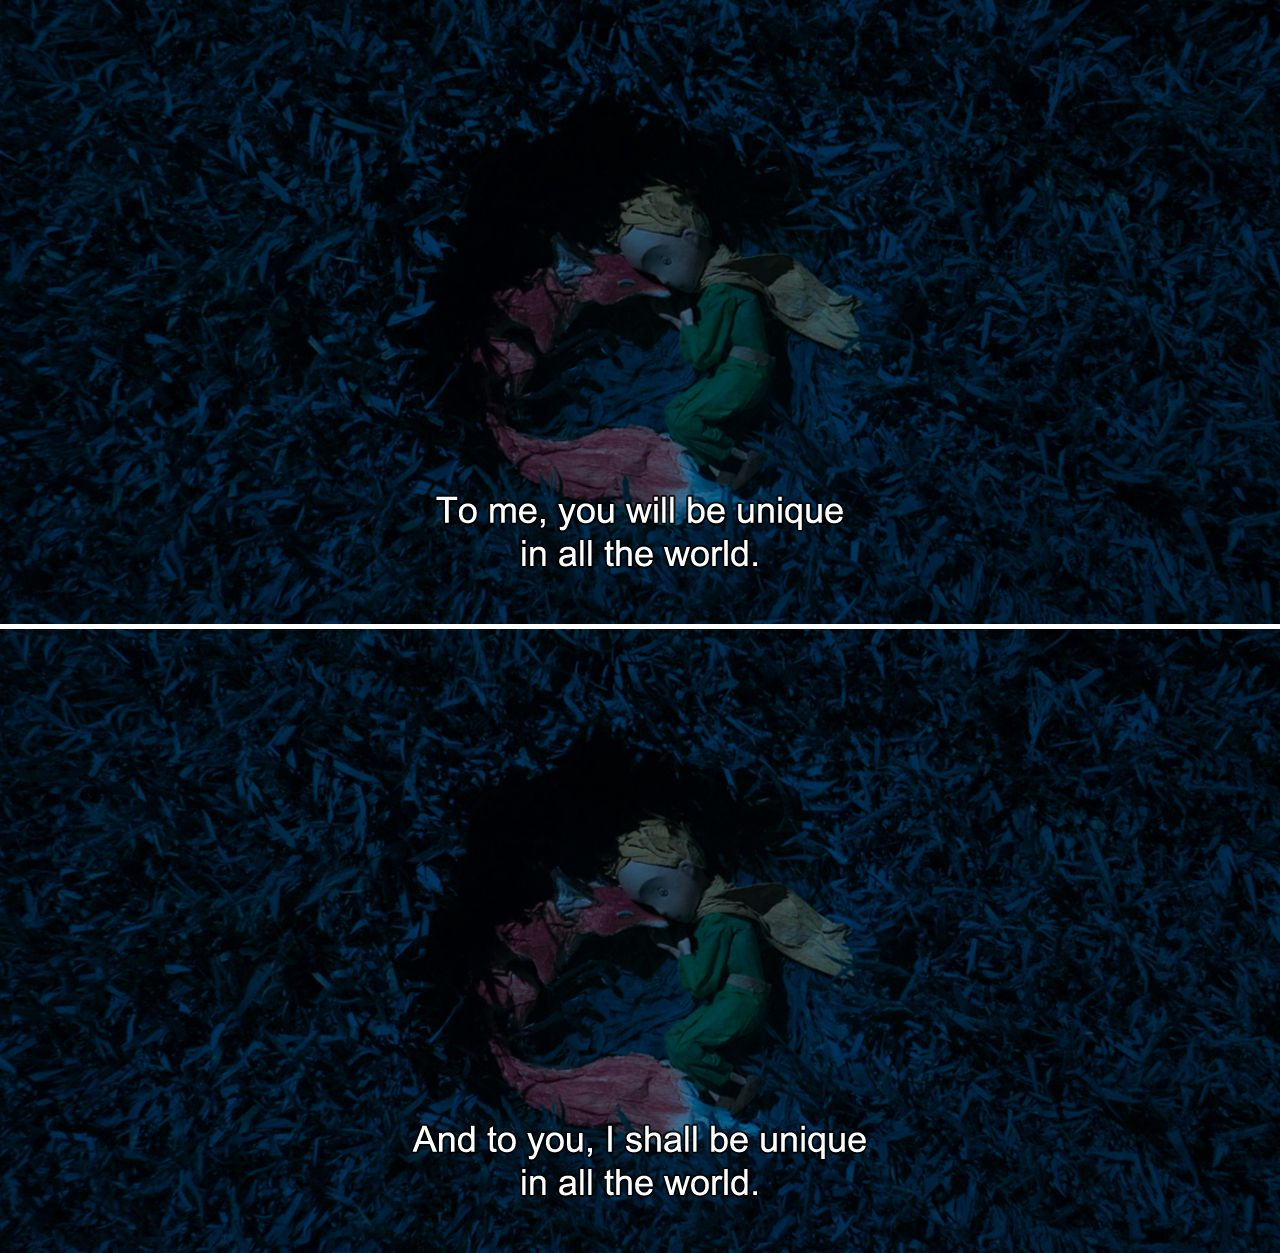 The Little Prince (2015) The Fox To me, you will be